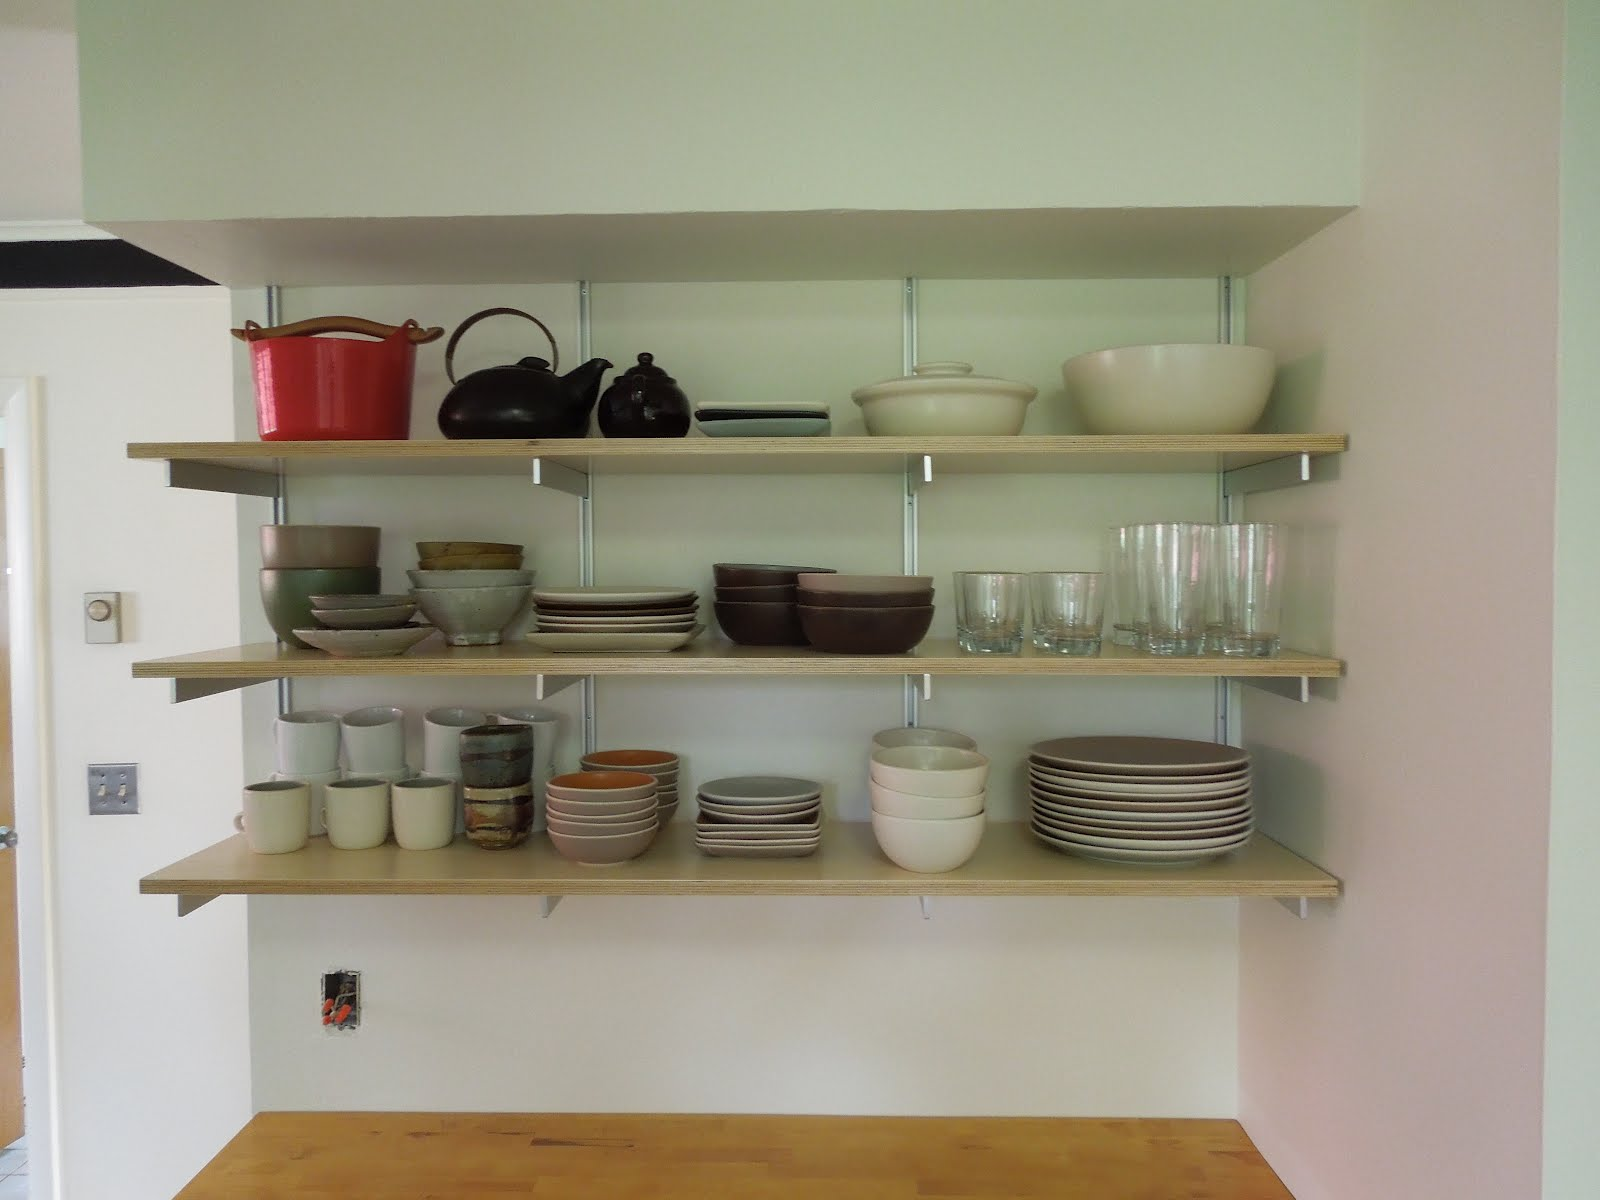 kitchen cabinet shelving tiled countertops toys and techniques shelves